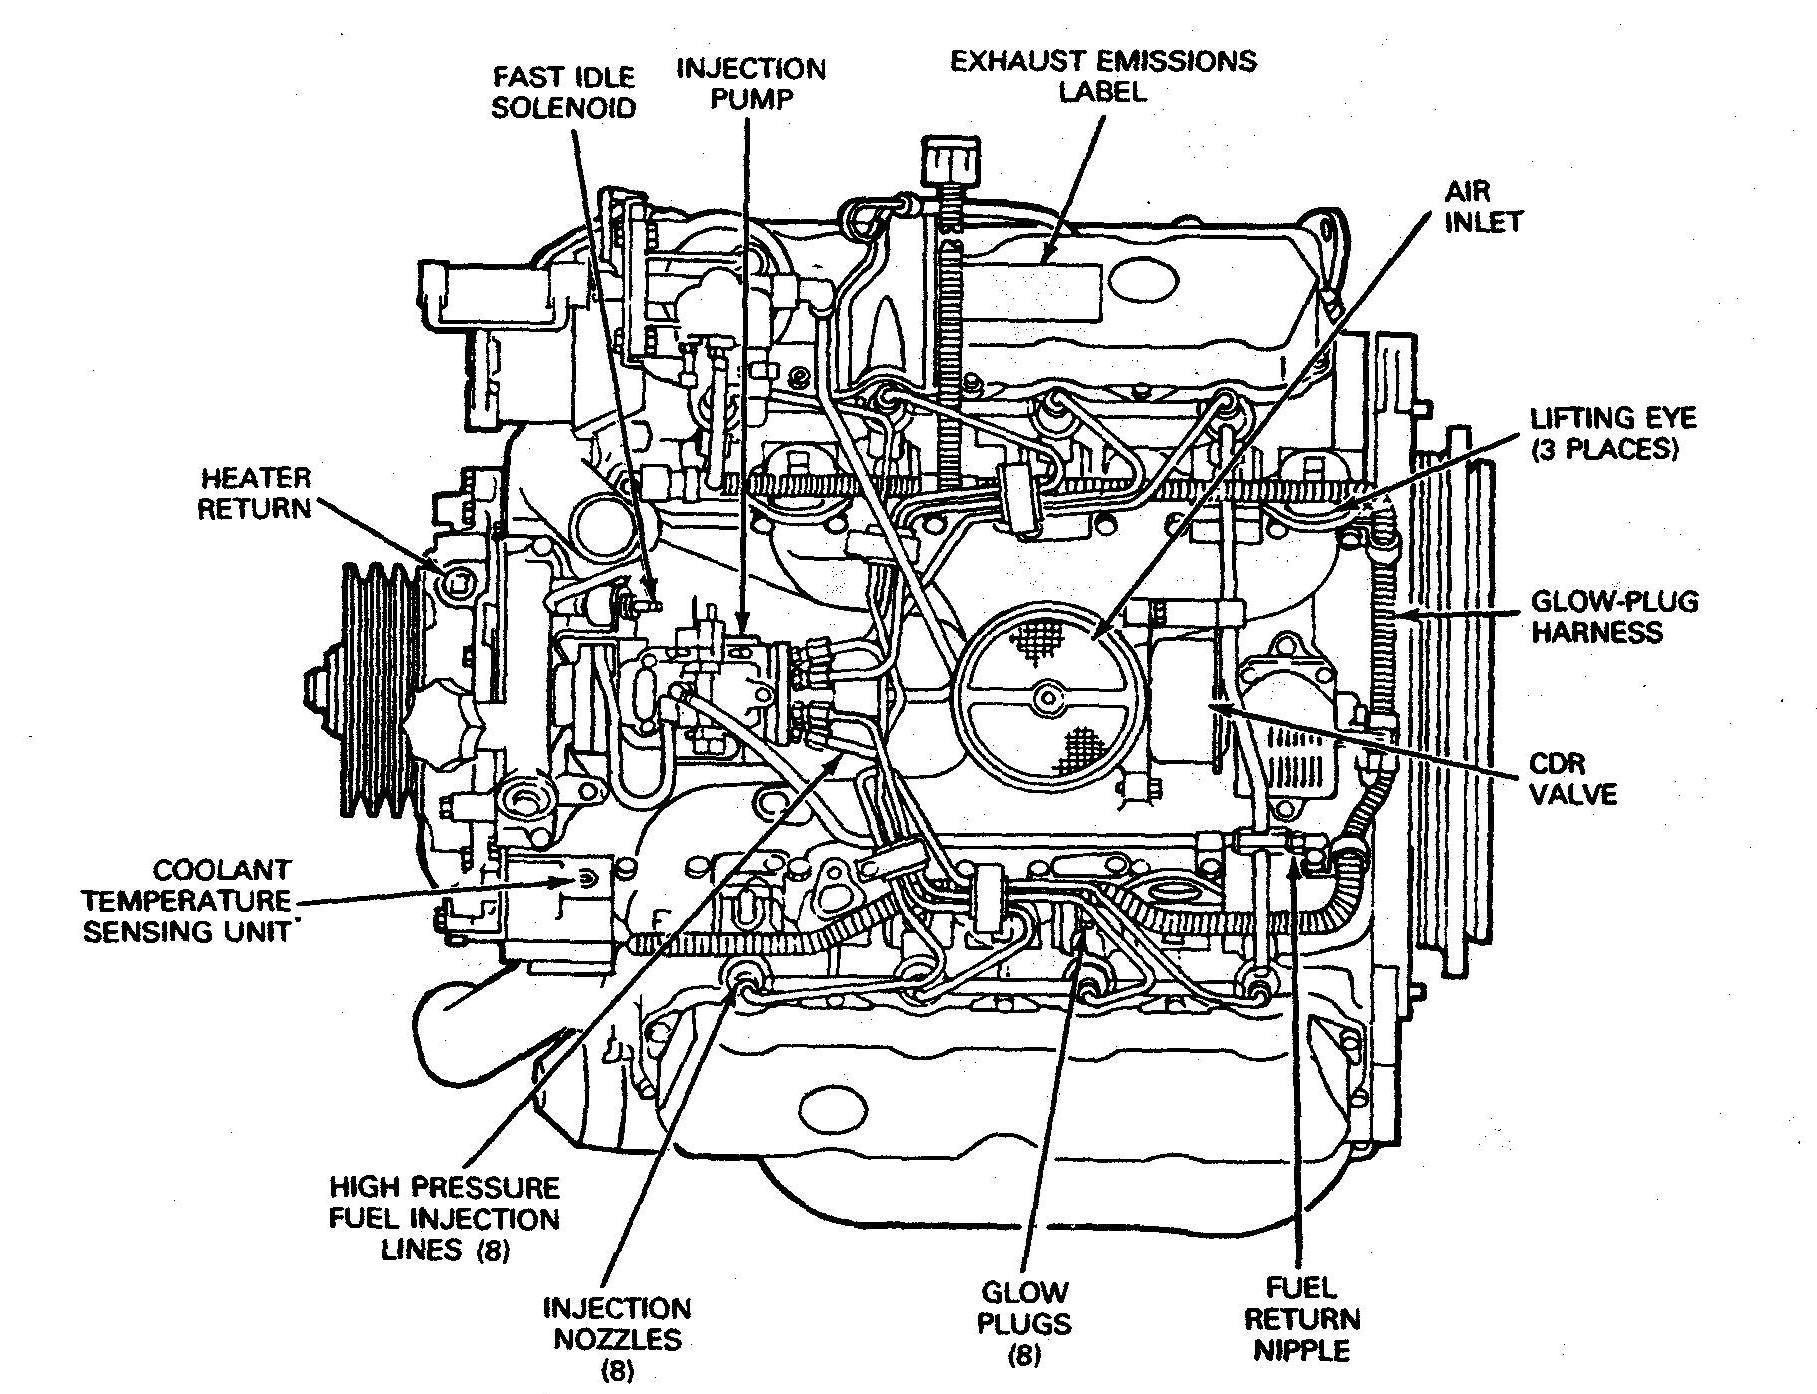 medium resolution of ford 7 3 engine parts diagram my car parts engineering diesel cars ford 7